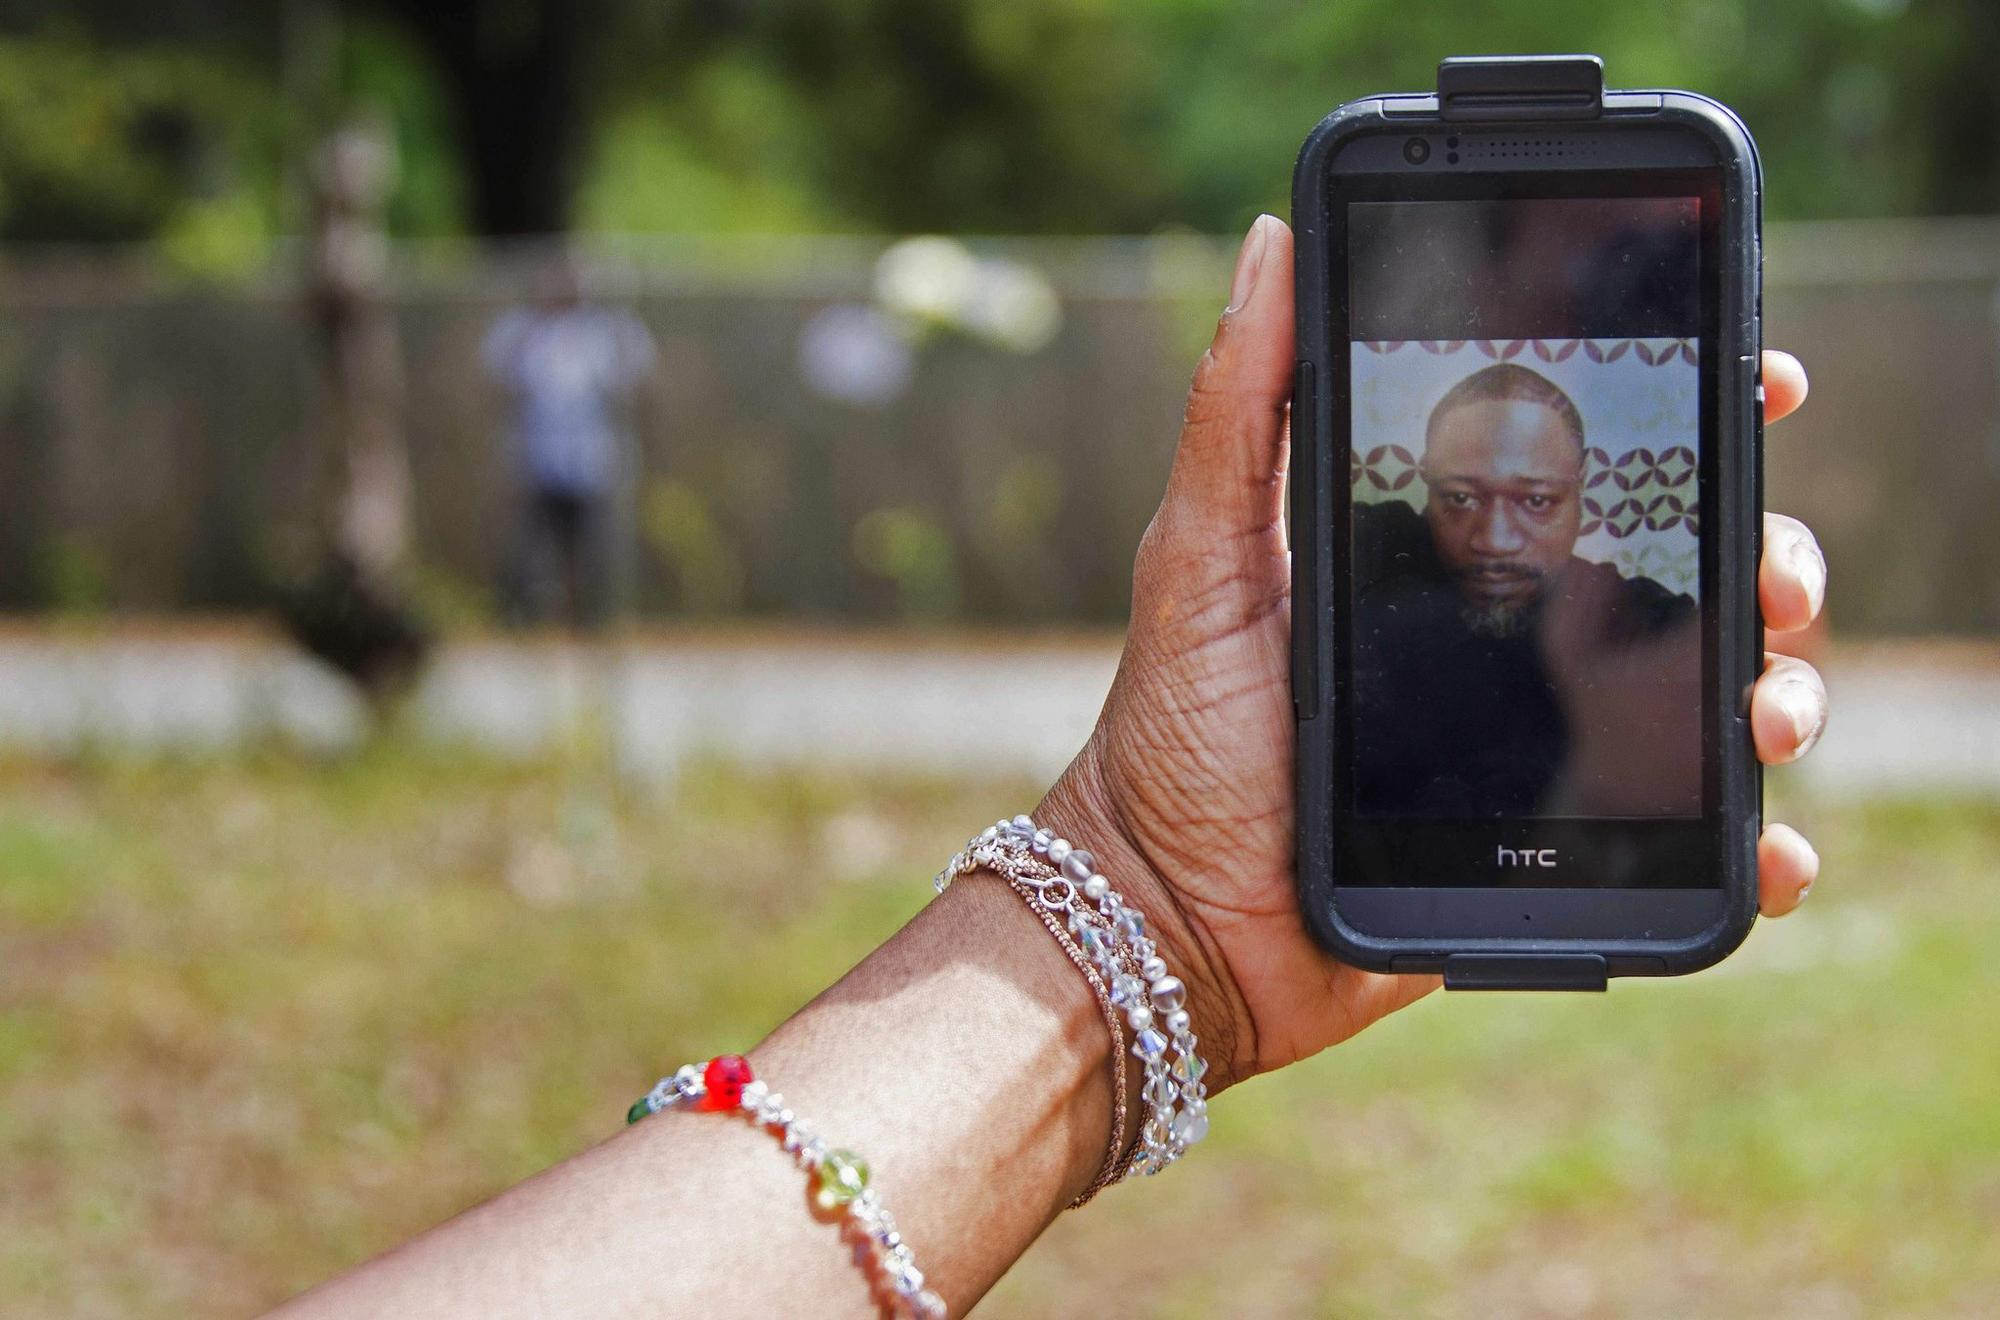 Barbara Scott, cousin of Walter Scott, holds up a picture of Scott on her cellphone in North Charleston, S.C., on April 8, 2015.